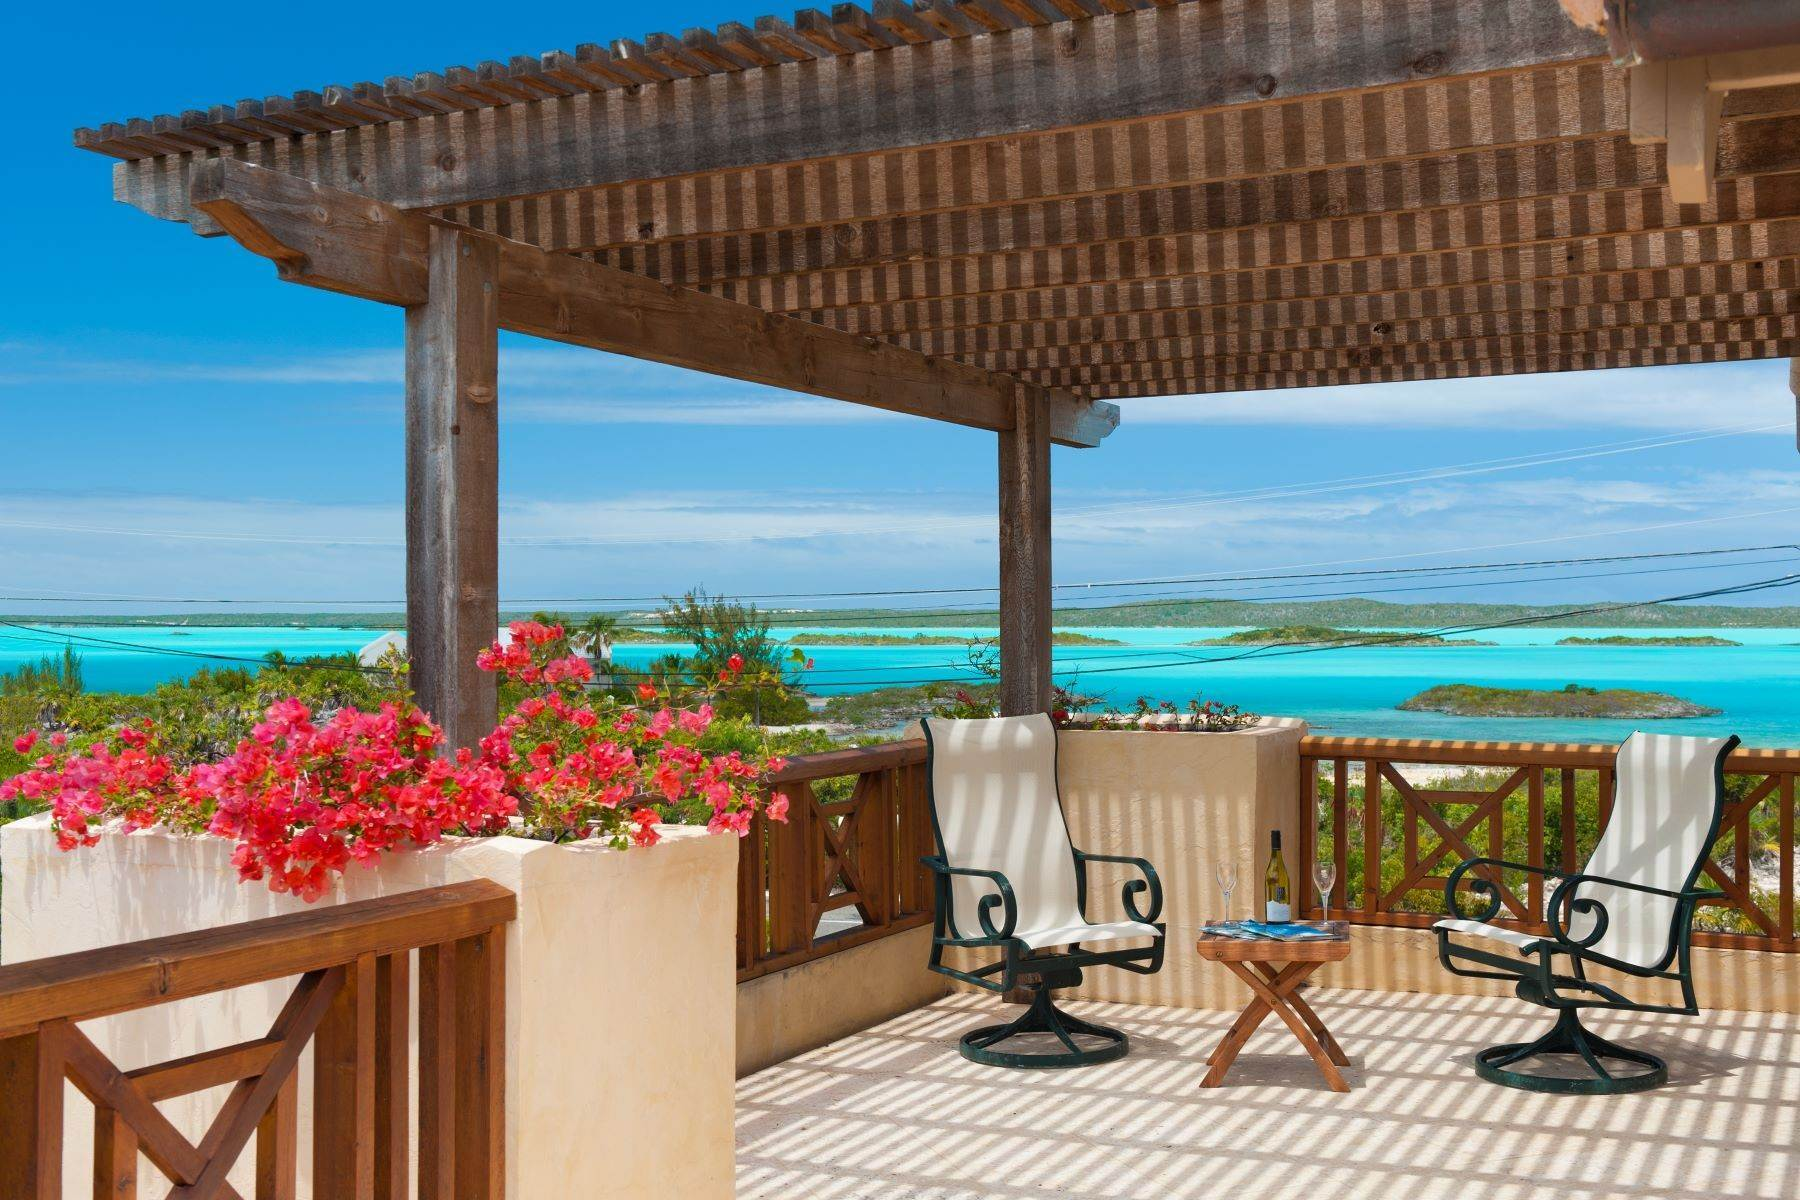 Single Family Homes for Sale at Villa Rosso di Sera Chalk Sound, Providenciales Turks And Caicos Islands